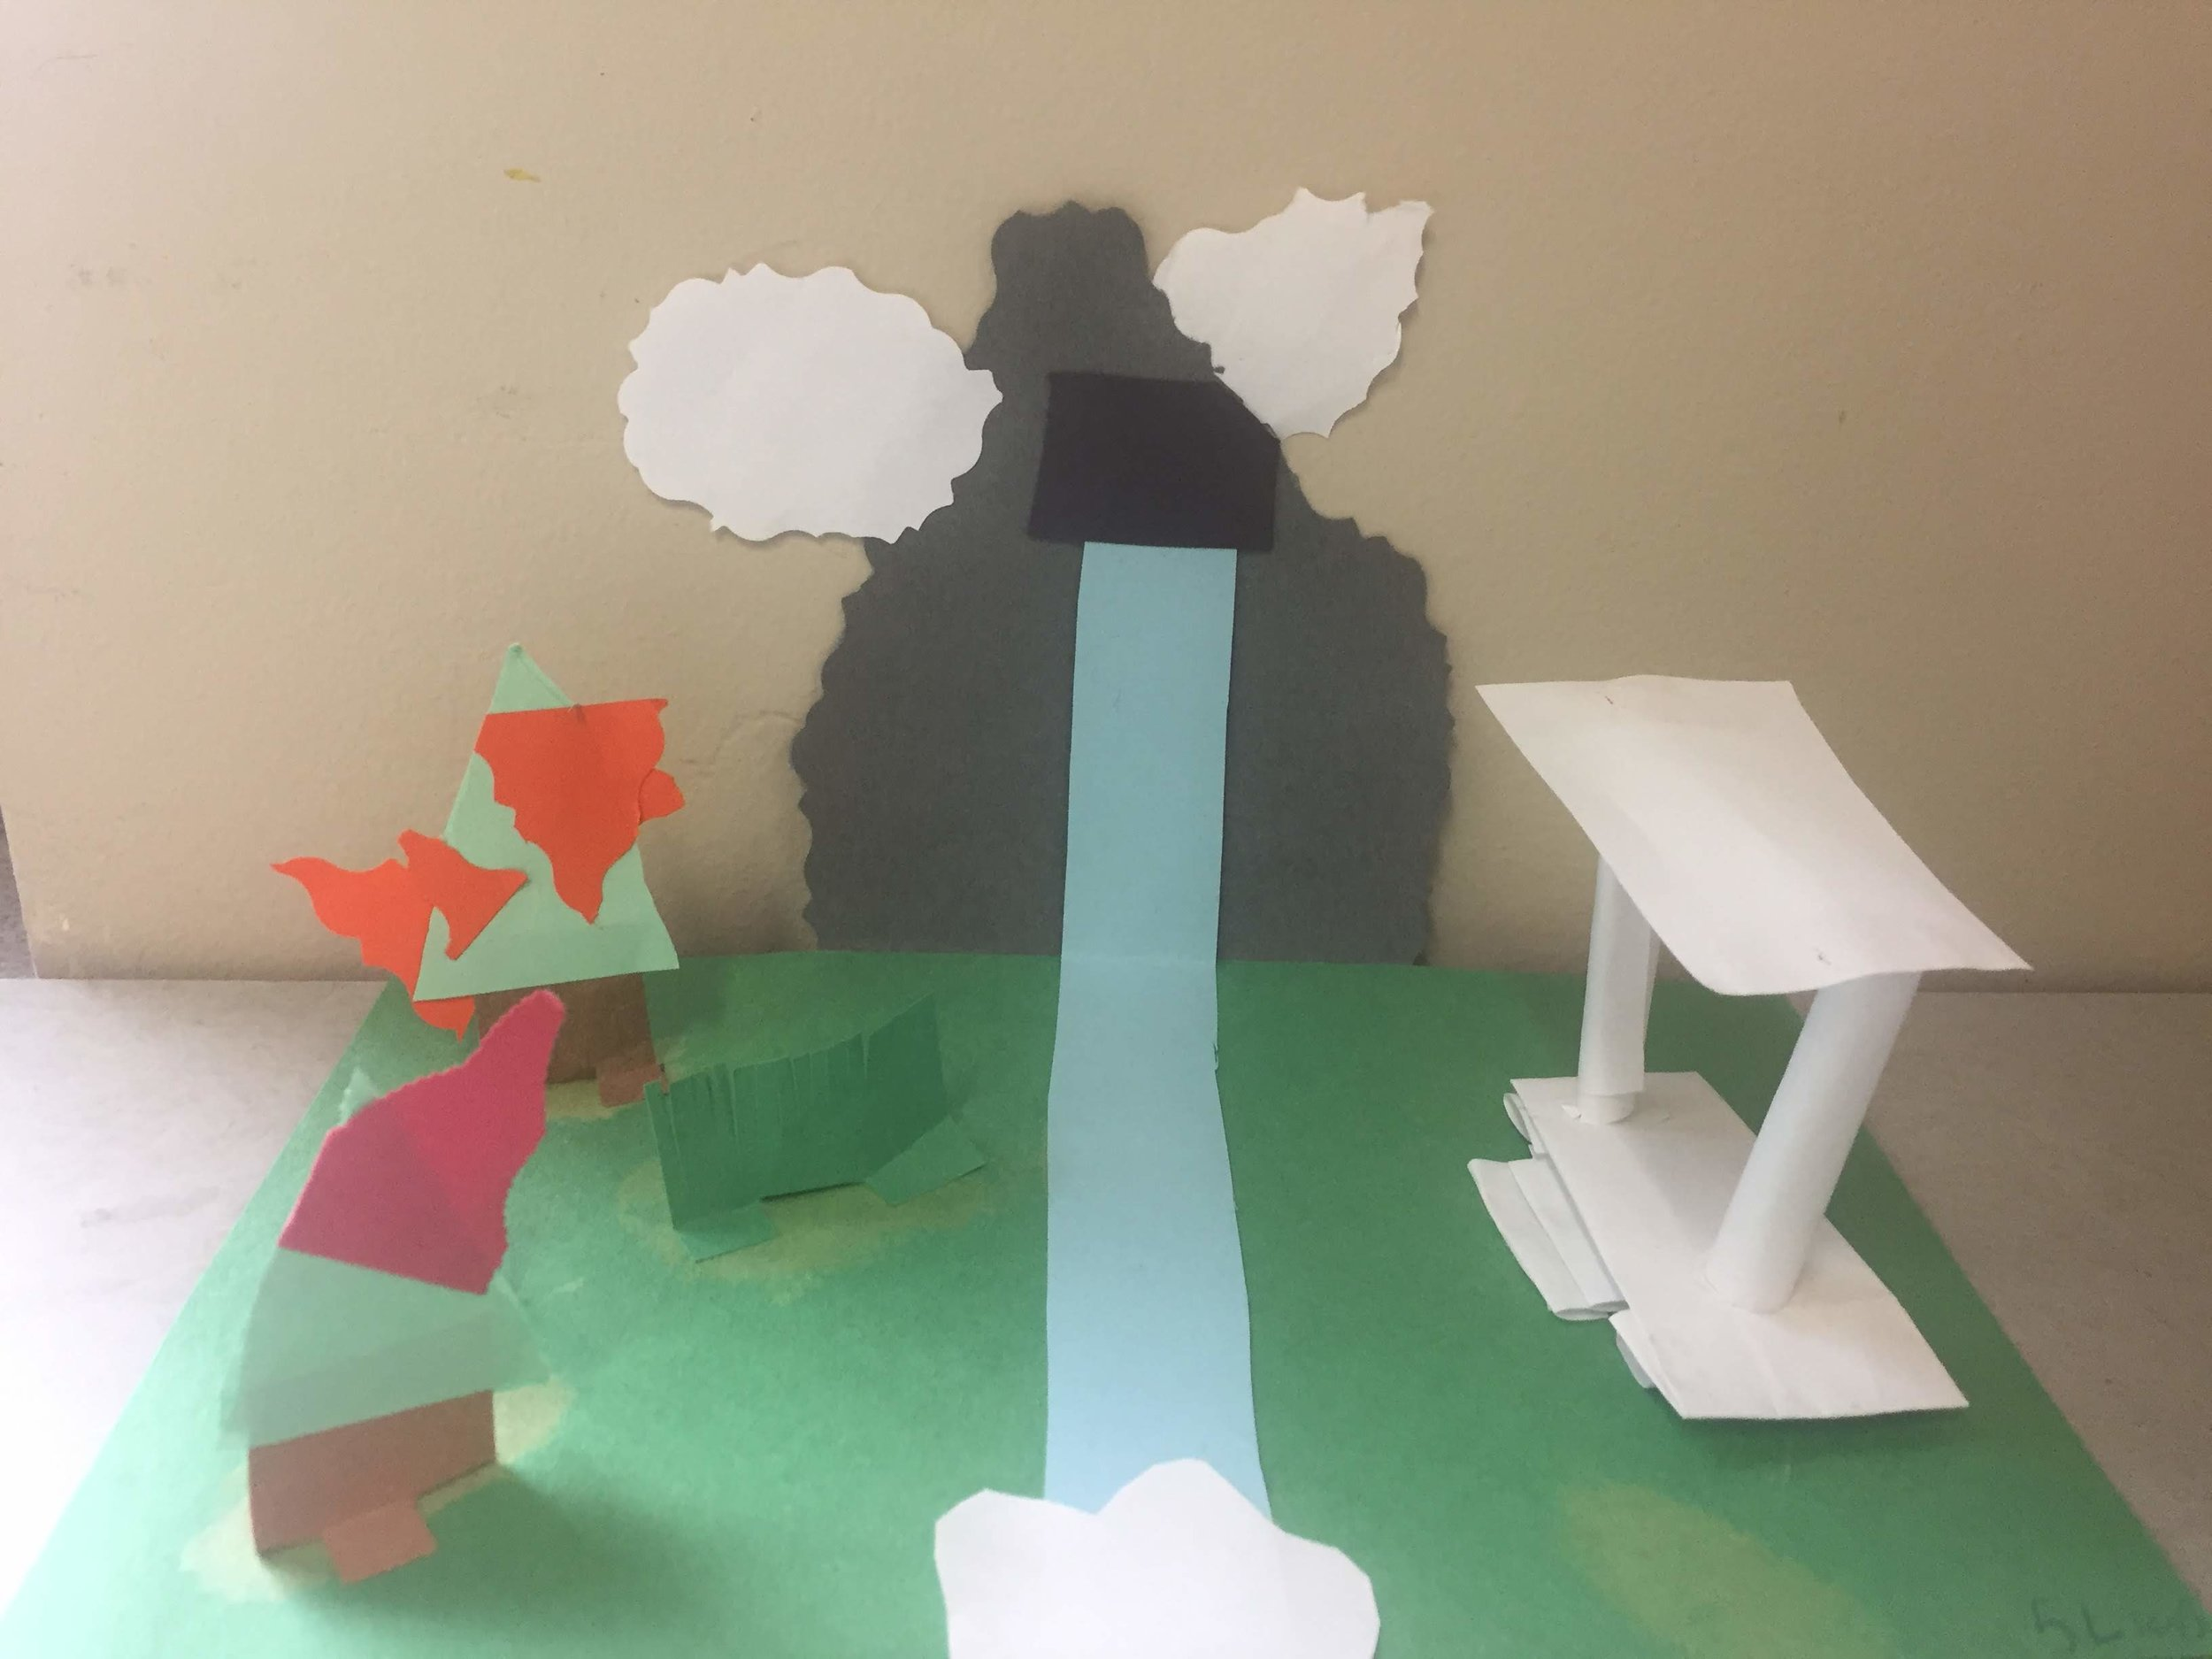 Paper Sculpture by fifth grade artist, Jurem (Leurquin)